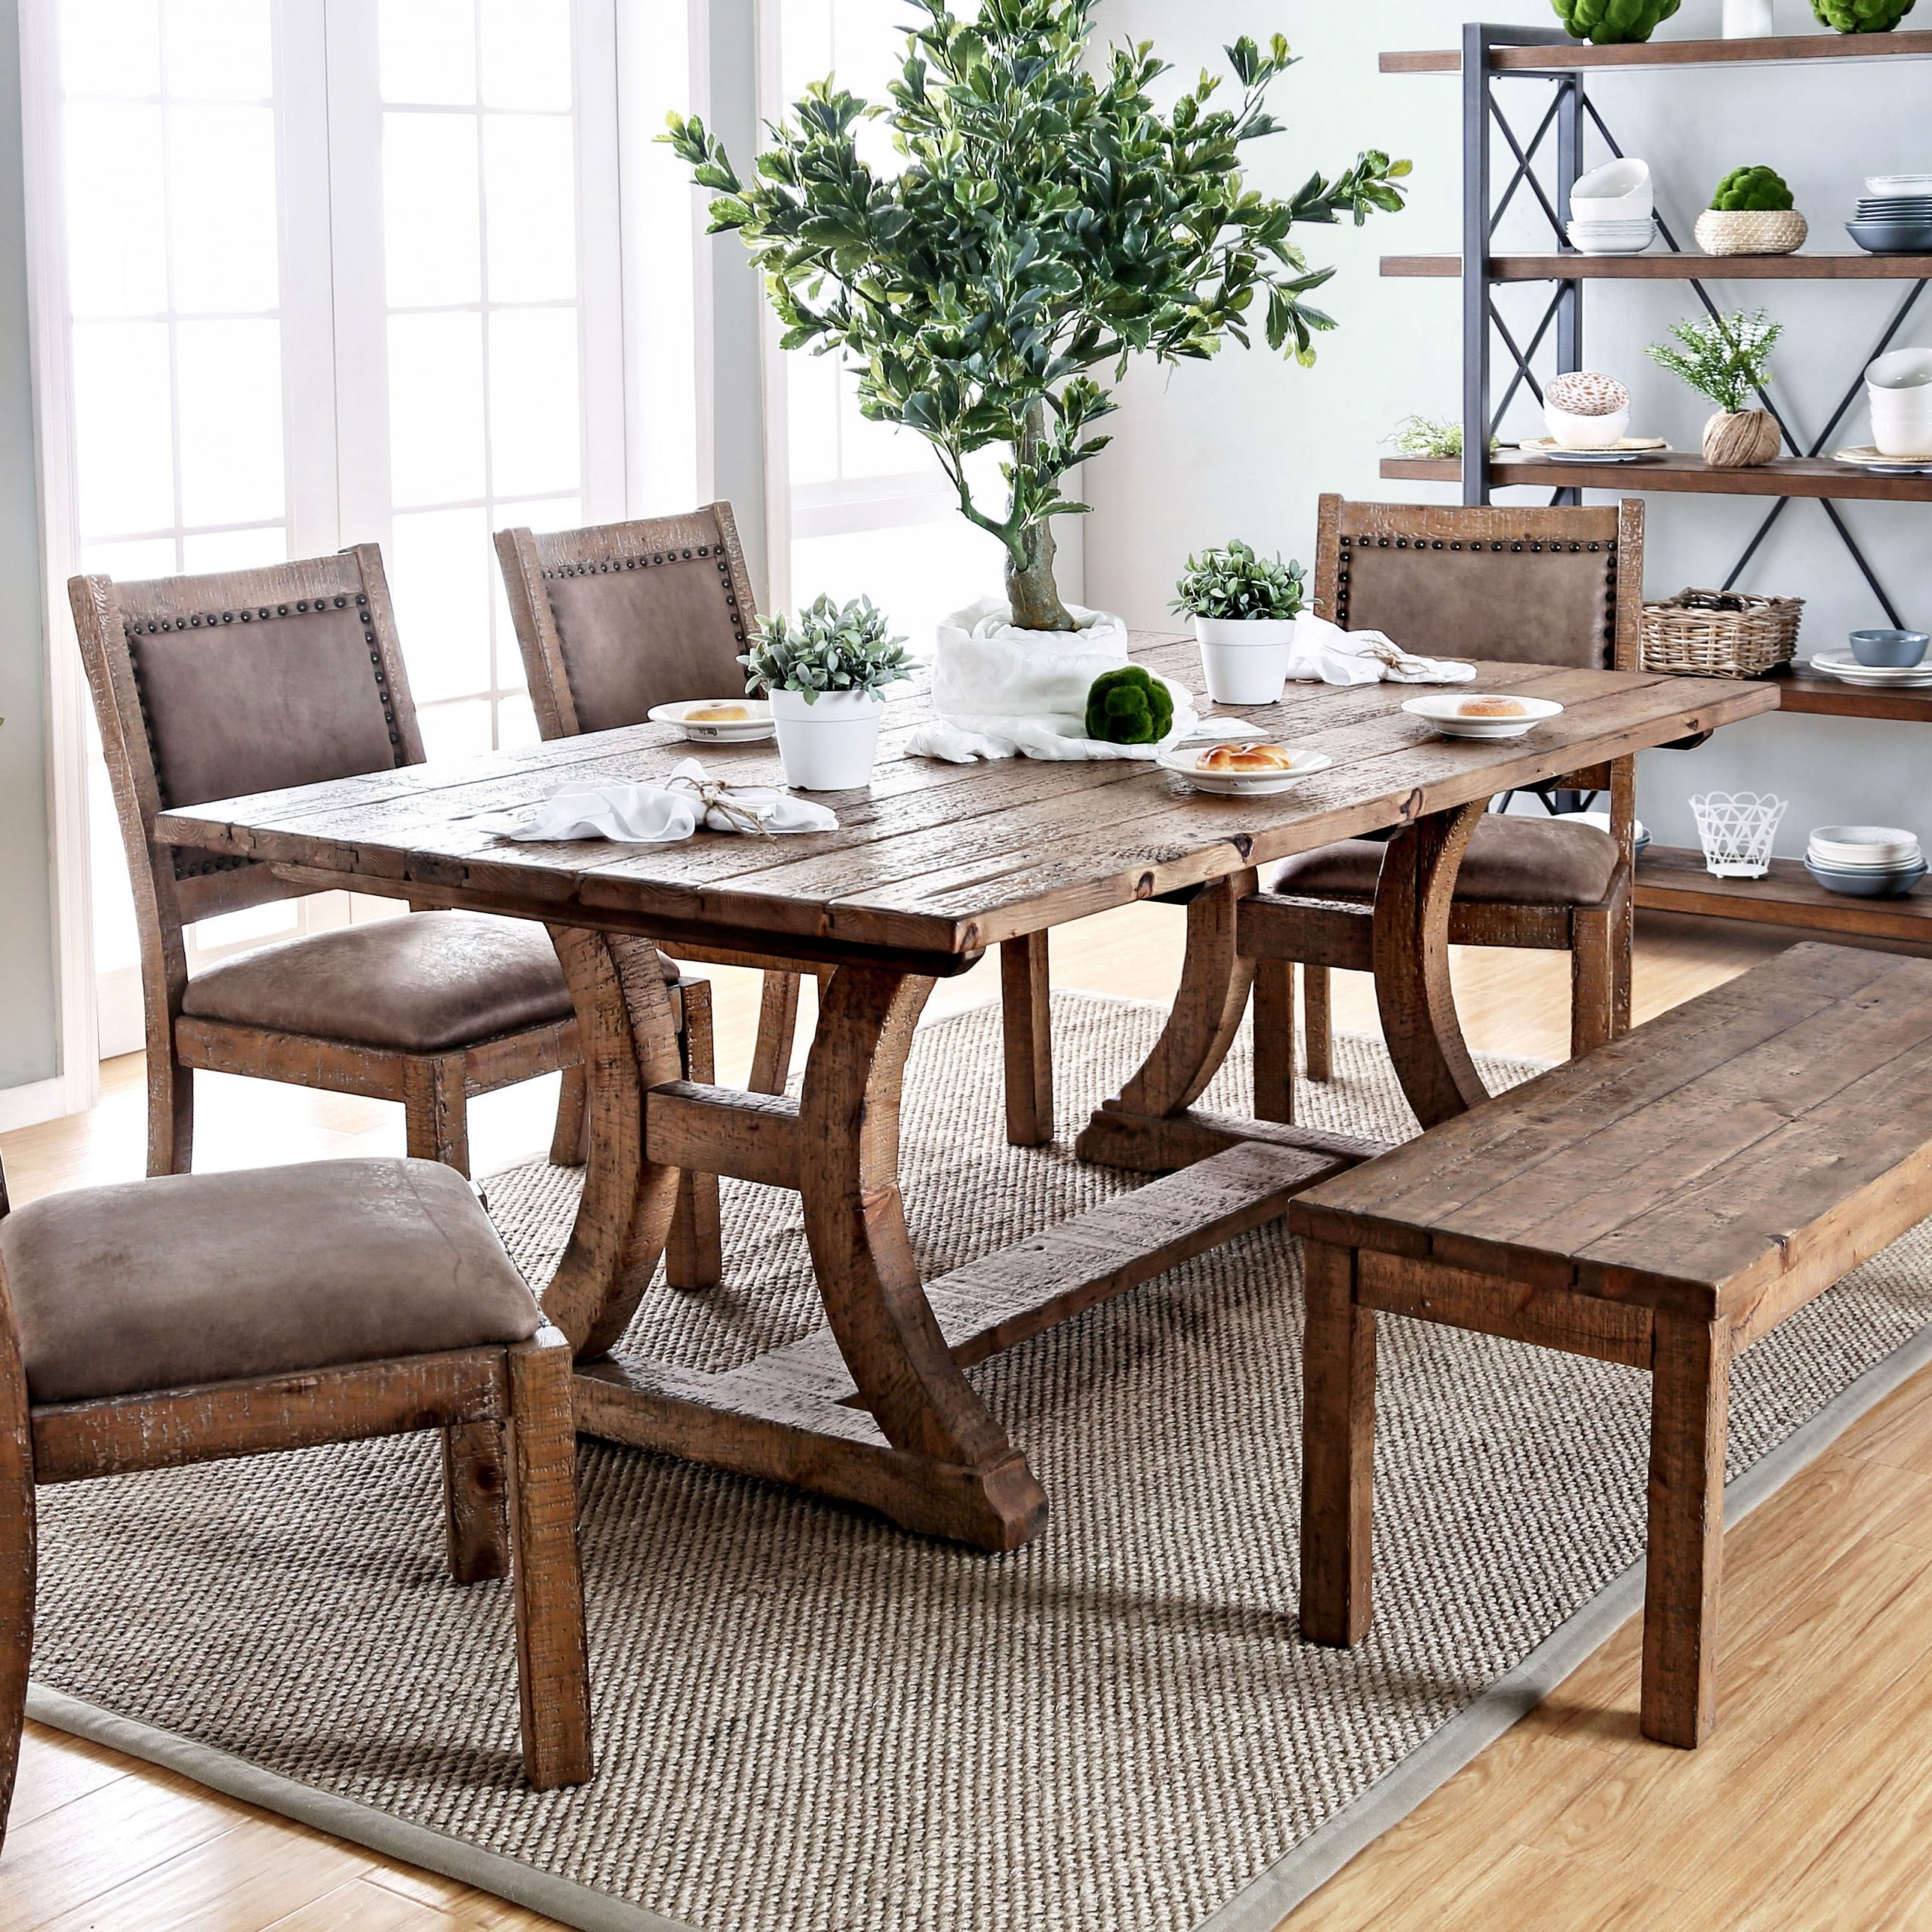 2020 Furniture Of America Sail Industrial Pine Solid Wood Dining Table within Rustic Pine Small Dining Tables